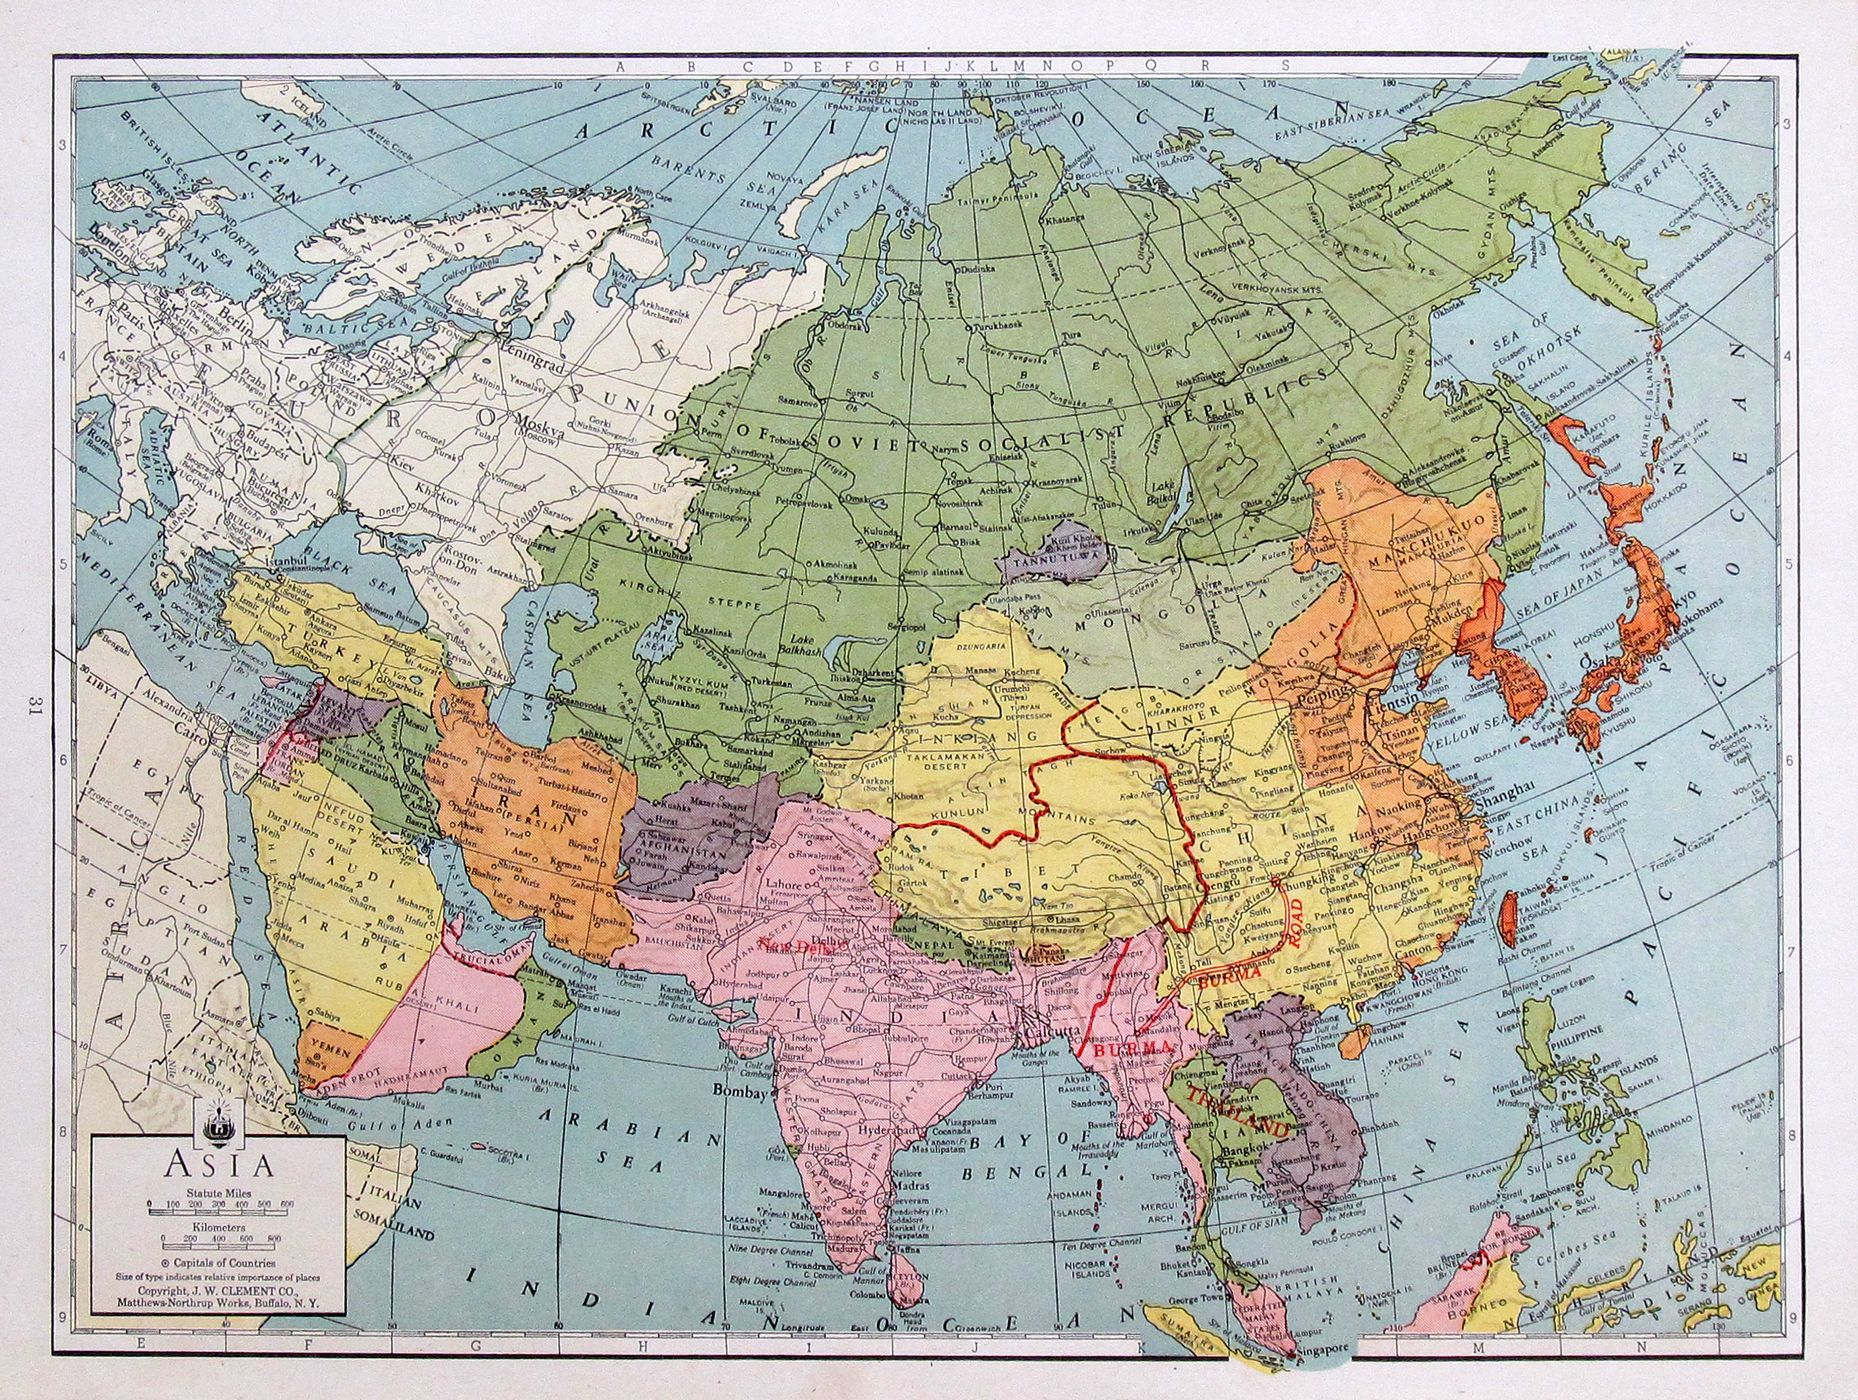 Map Of Asia During Wwii.Asia During Wwii 1943 Vintage Map Available For Framing Wwii